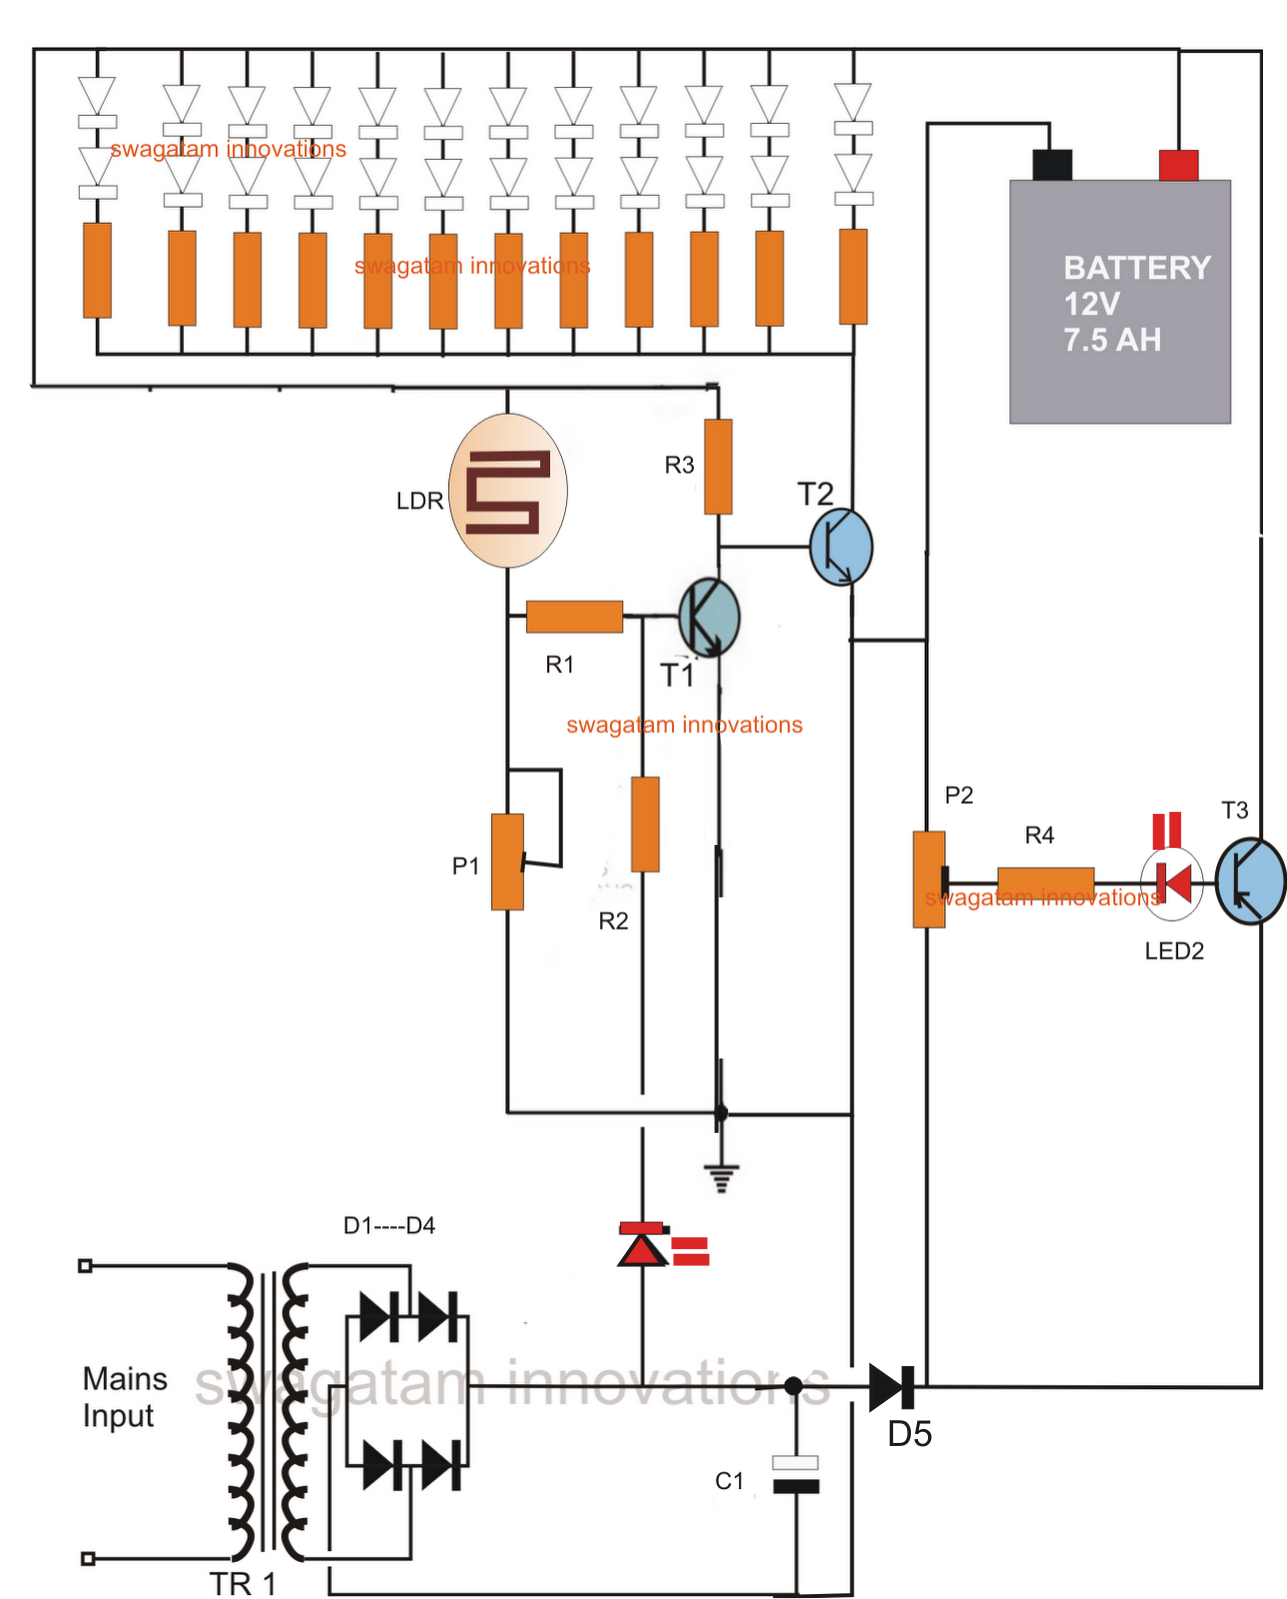 Luxury Wiring Diagram For Lighting Circuits Diagrams Digramssample Diagramimages Wiringdiagramsamp Circuit Projects Led Emergency Lights Emergency Lighting